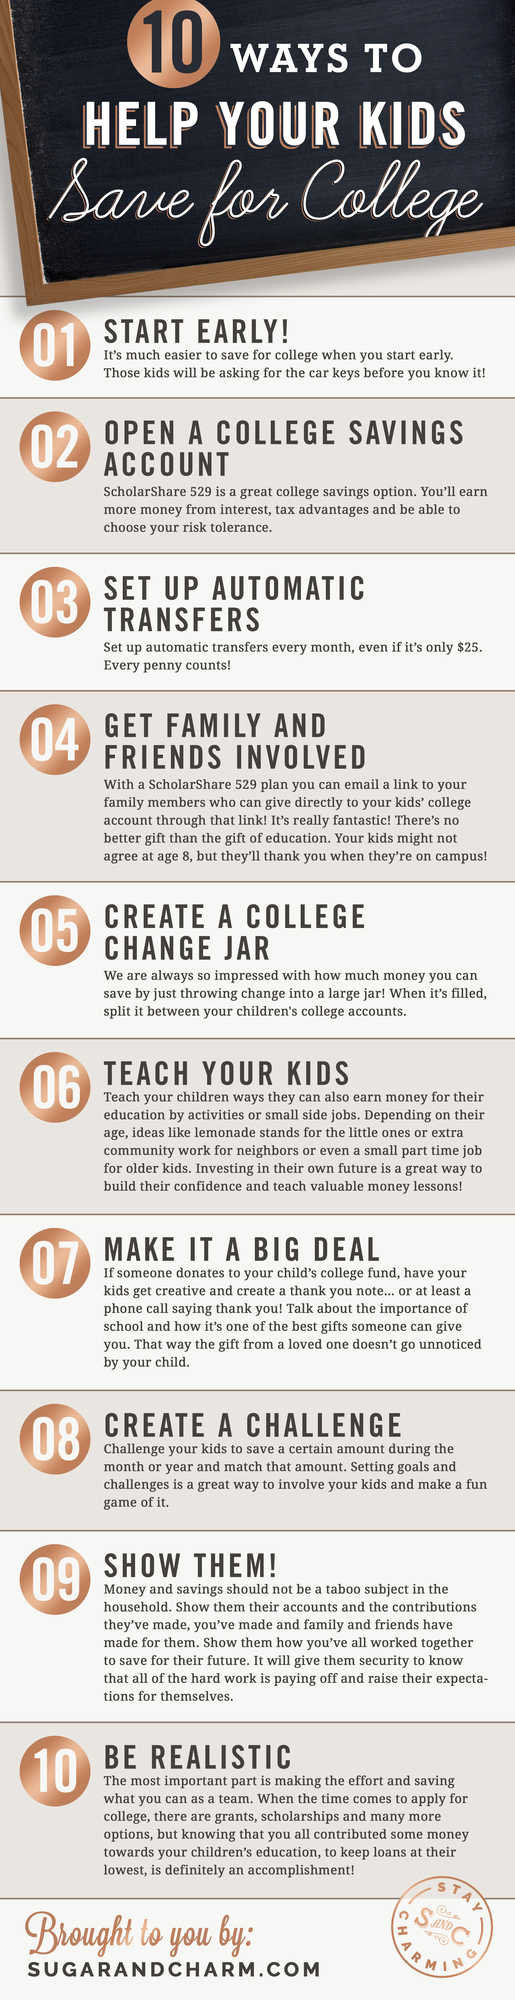 10 Ways to Help Your Kids Save for College! #College #Education #Savings #Family #Kids #Finances #School #Money